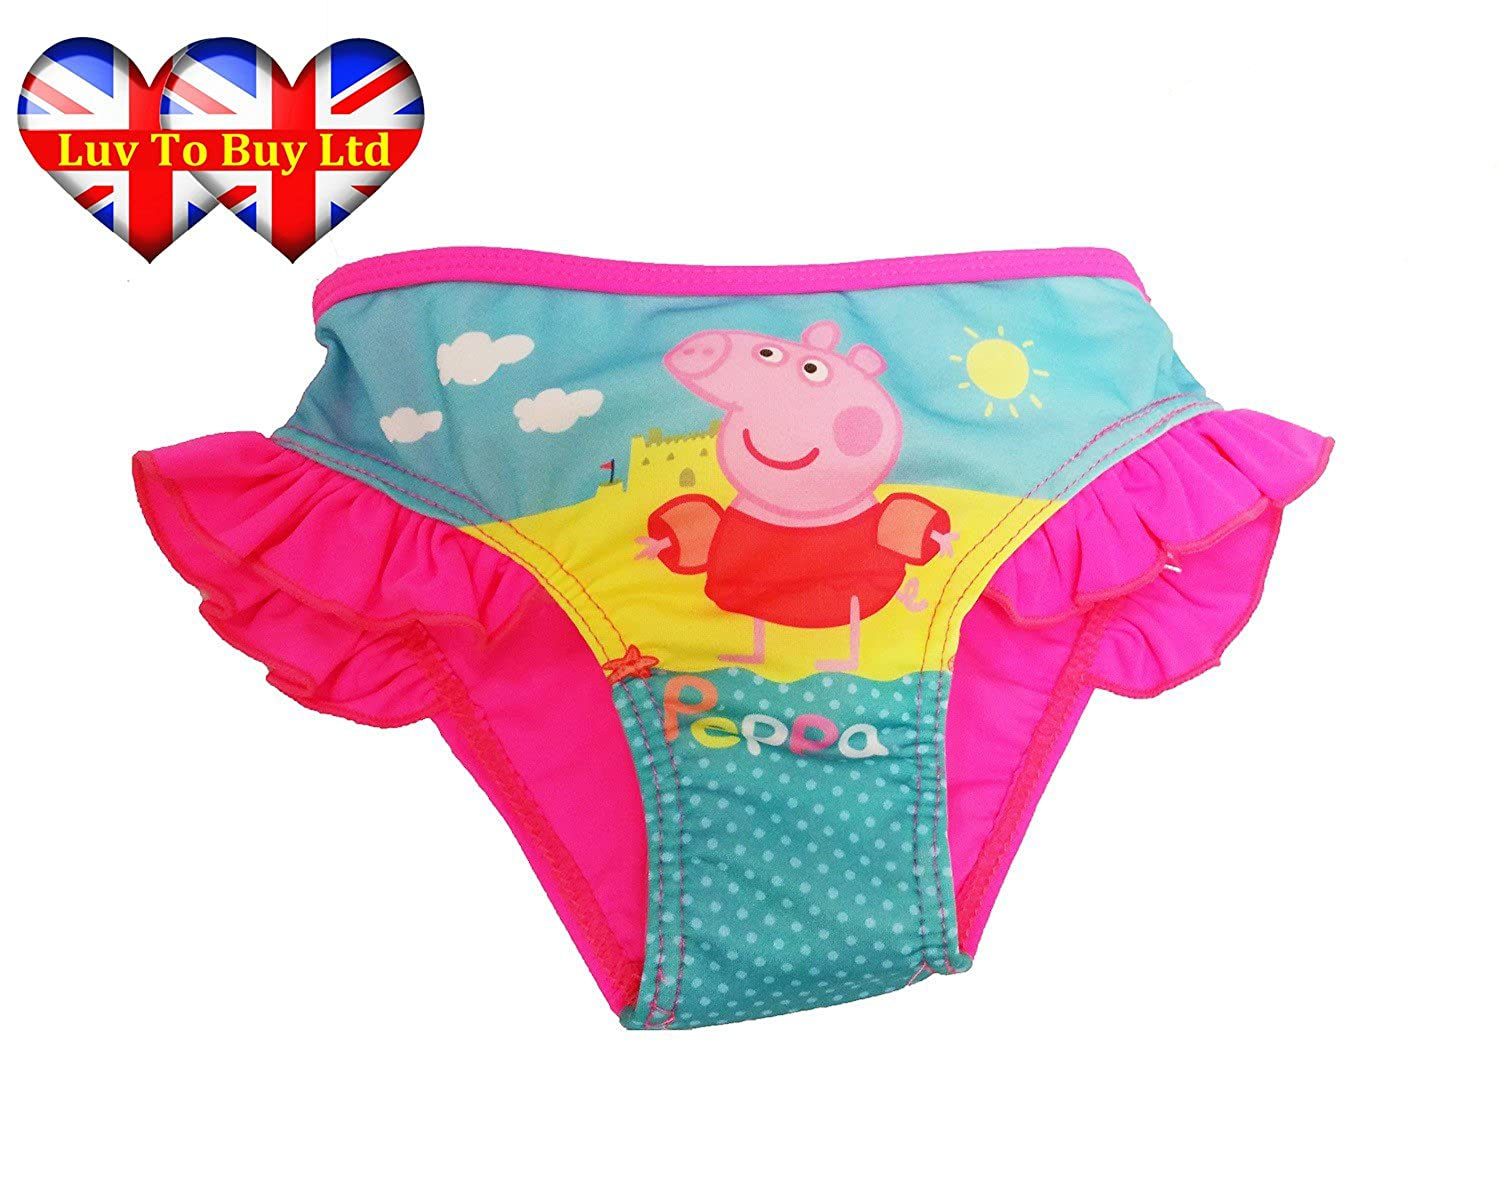 Peppa Pig Girls Bikini, girls swimsuit, Girls Bikini Bottoms (Same Day Dispatch) Luv To Buy 74864